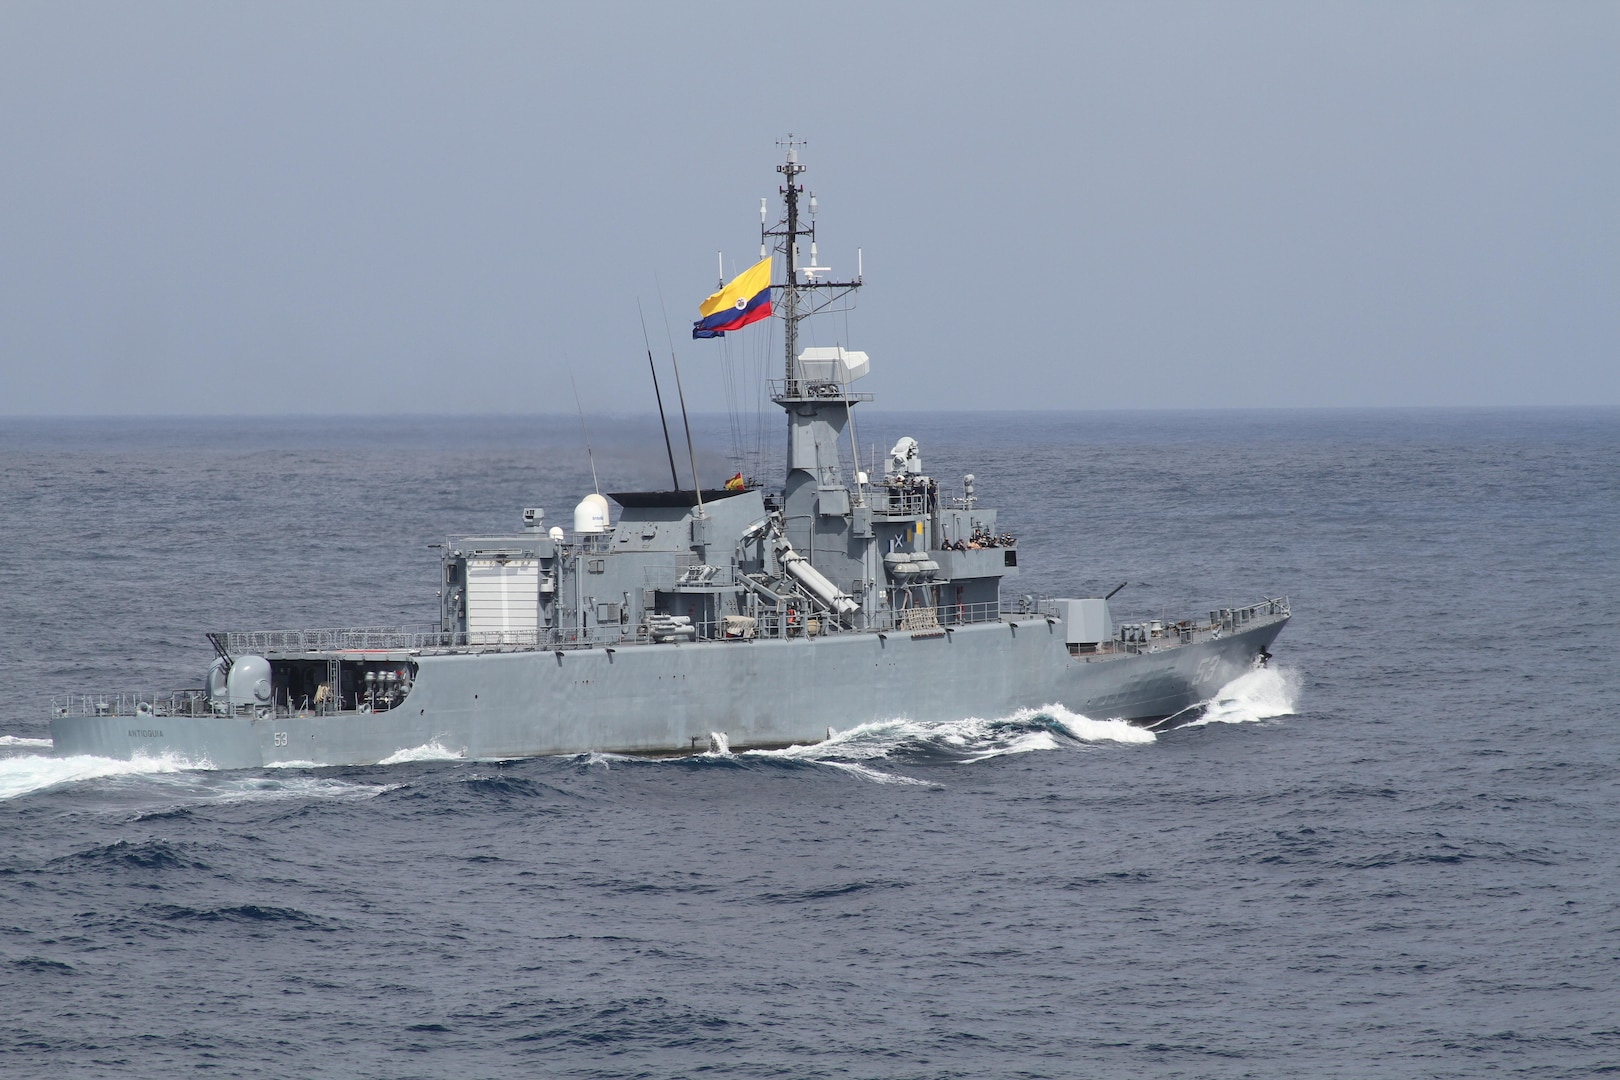 The Colombian naval frigate ARC Antioquia (FM-53) transits in the Caribbean Sea while conducting a passing exercise (PASSEX) with the Arleigh Burke-class guided-missile destroyer USS James E. Williams (DDG 95) Feb. 15.